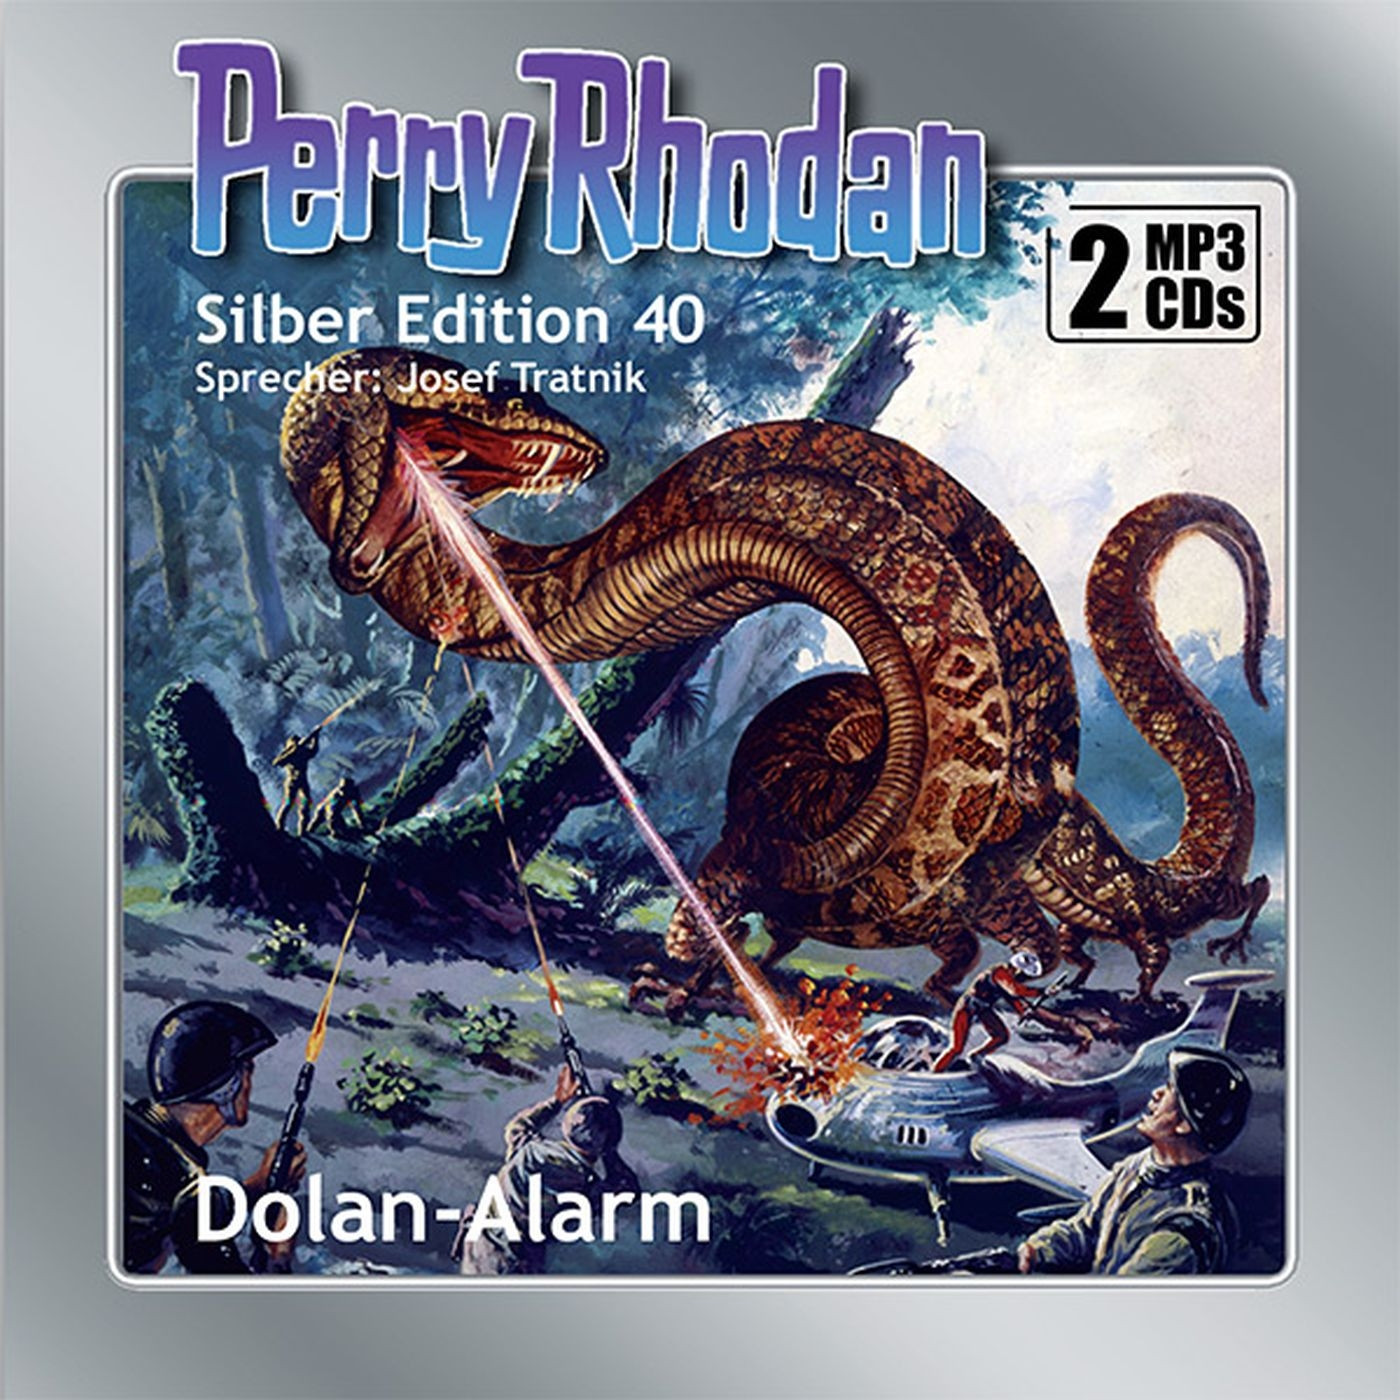 Perry Rhodan Silber Edition 40: Dolan-Alarm (2 mp3-CDs)